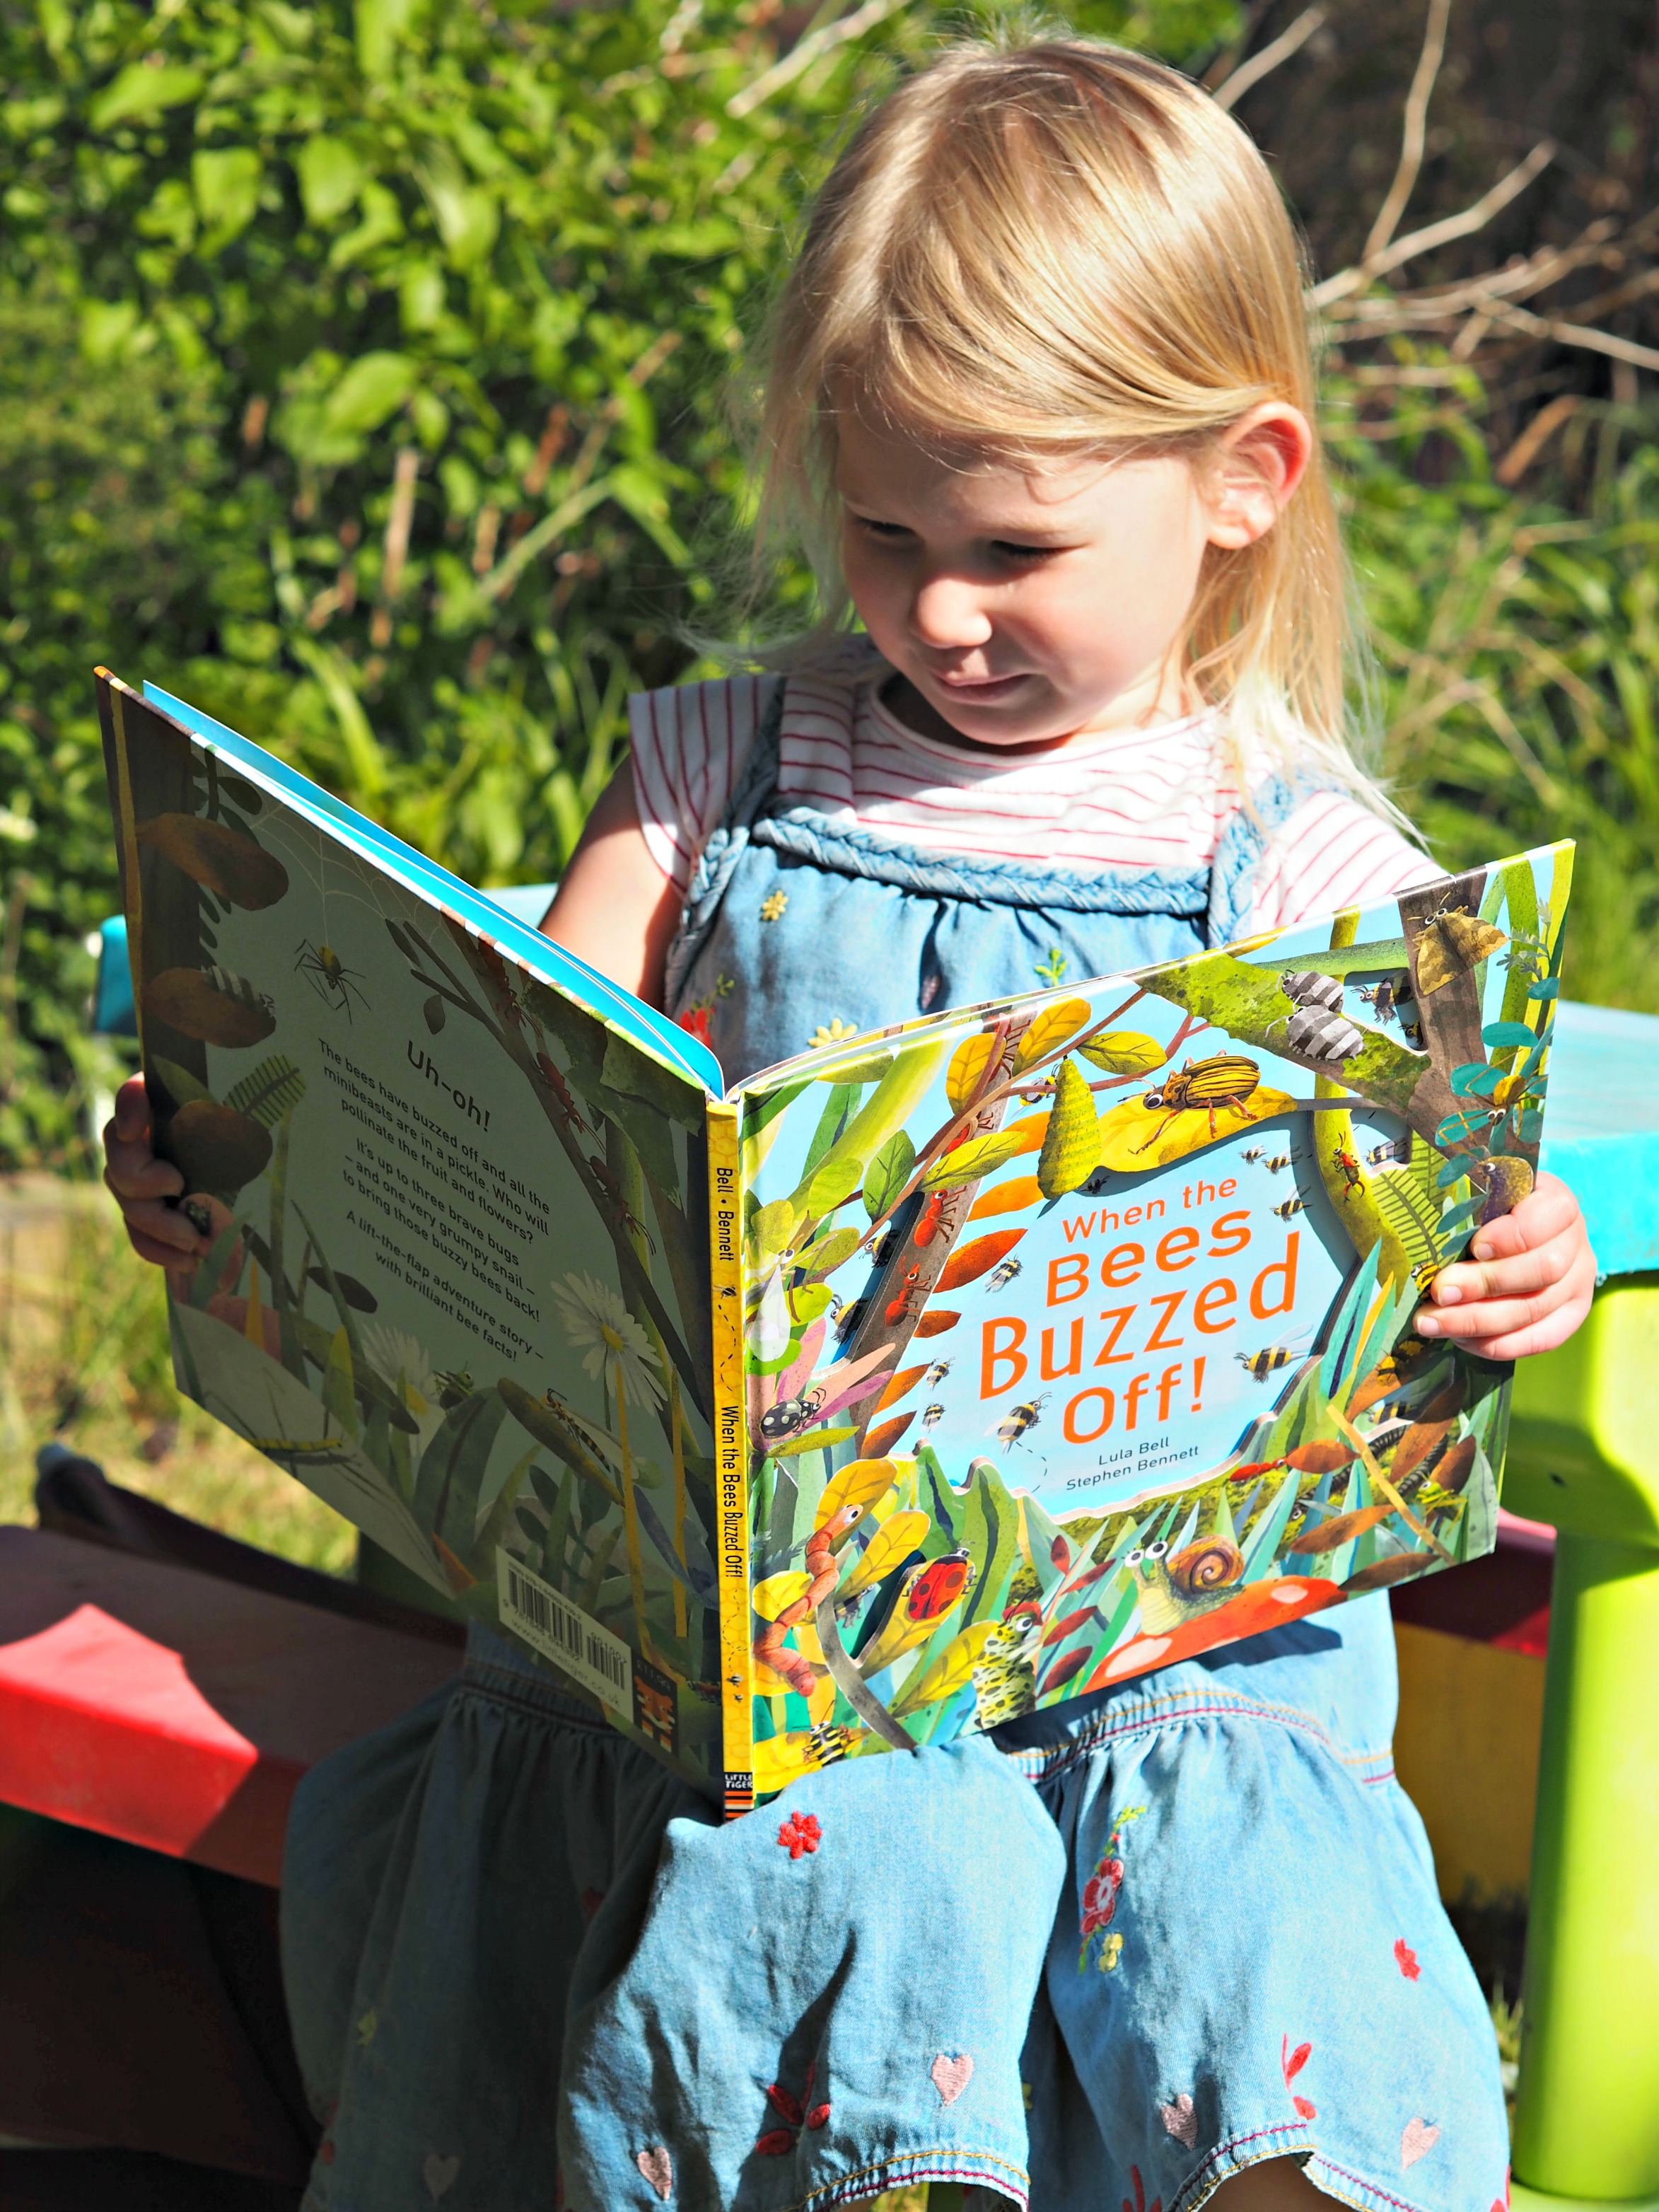 CHILDREN'S BOOK REVIEW When the Bees Buzzed Off